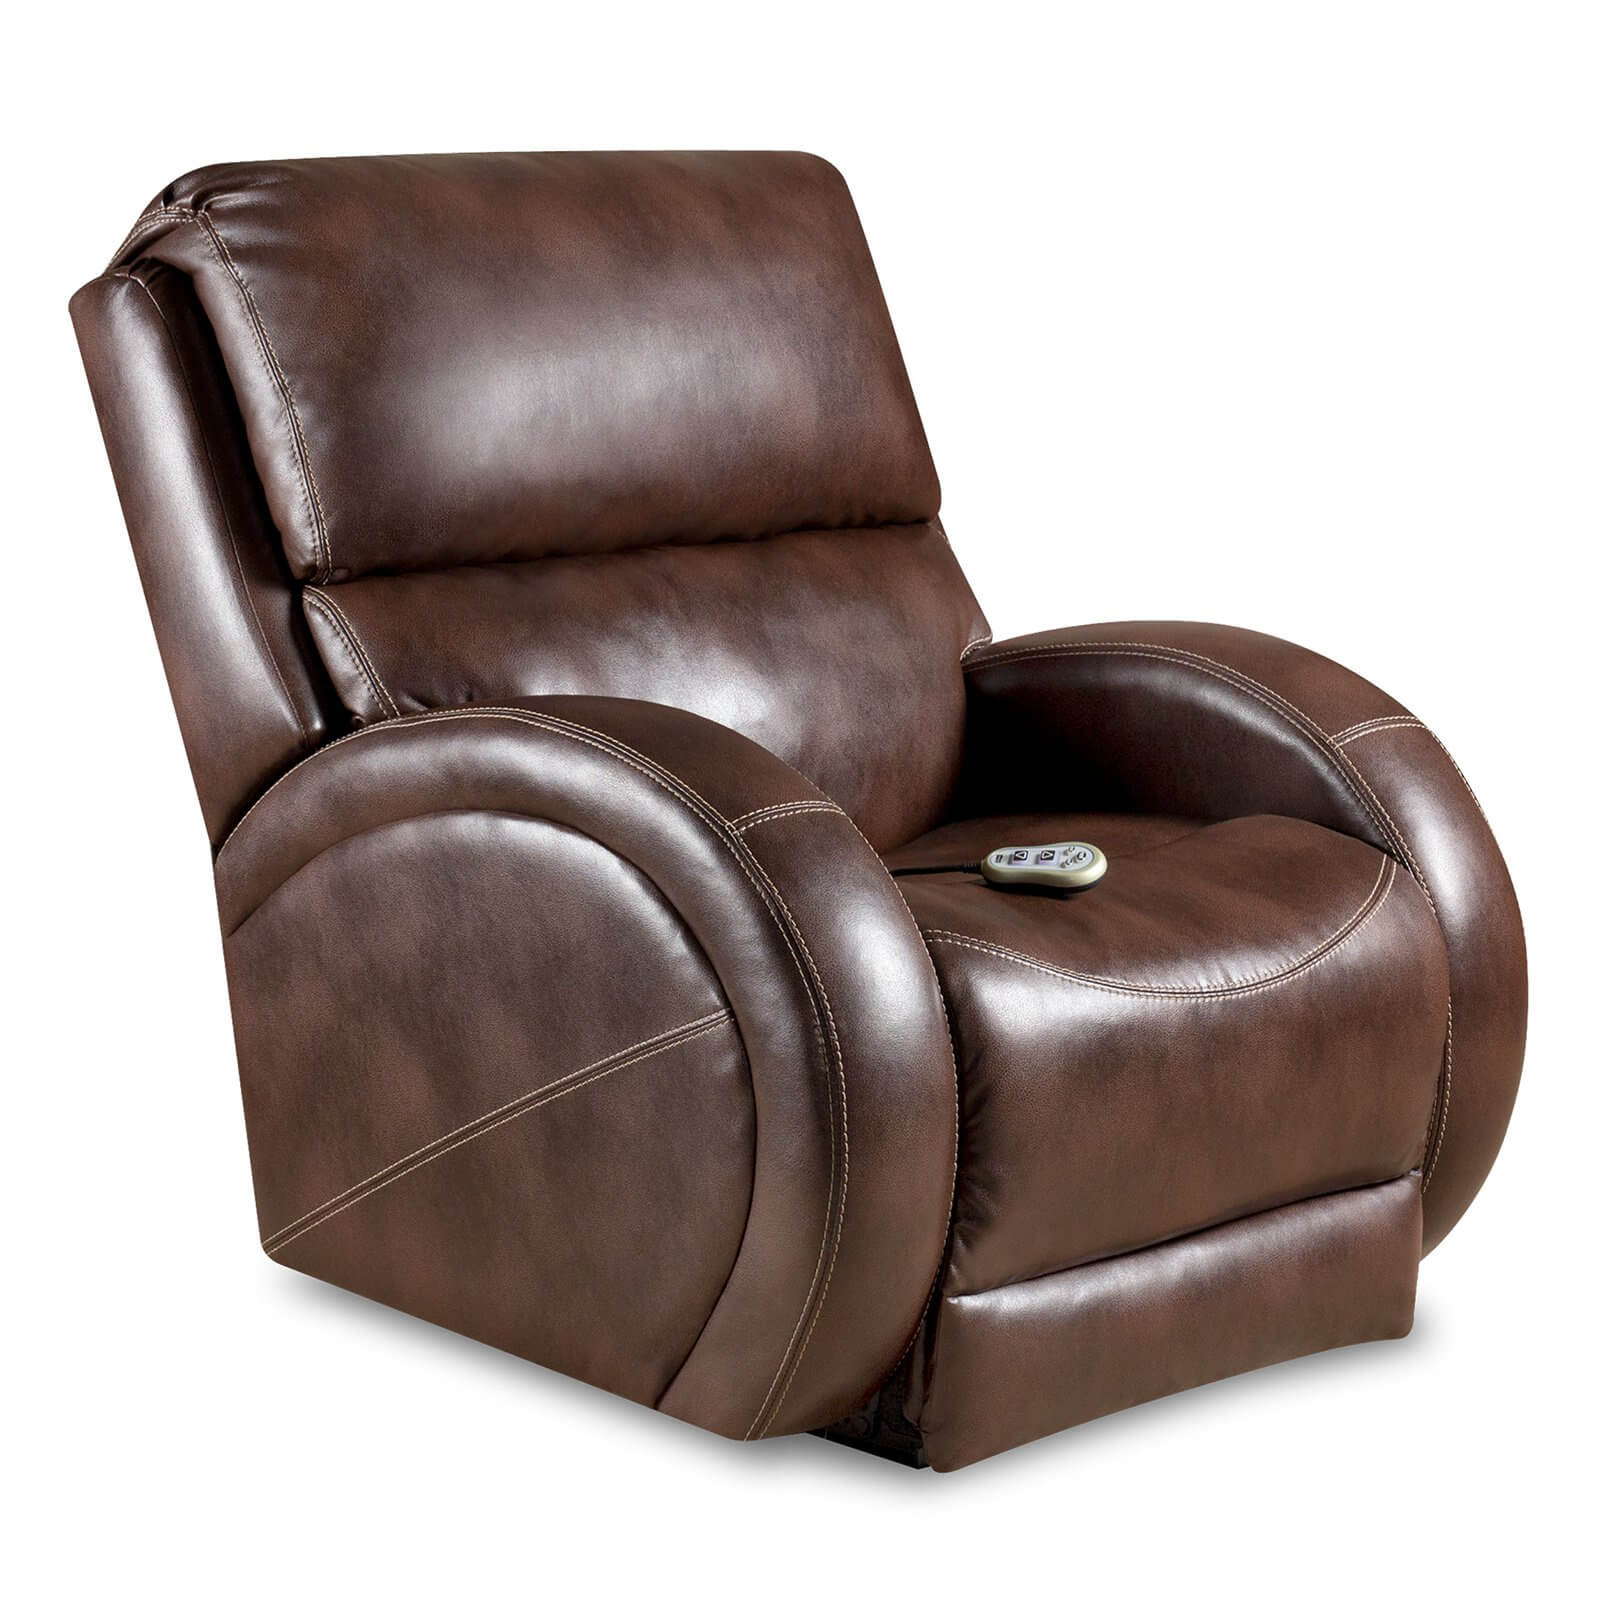 The power recliner replaces the hand cranked action of standard models with a built-in engine for raising and lowering the chair electronically. This model features a remote control function.